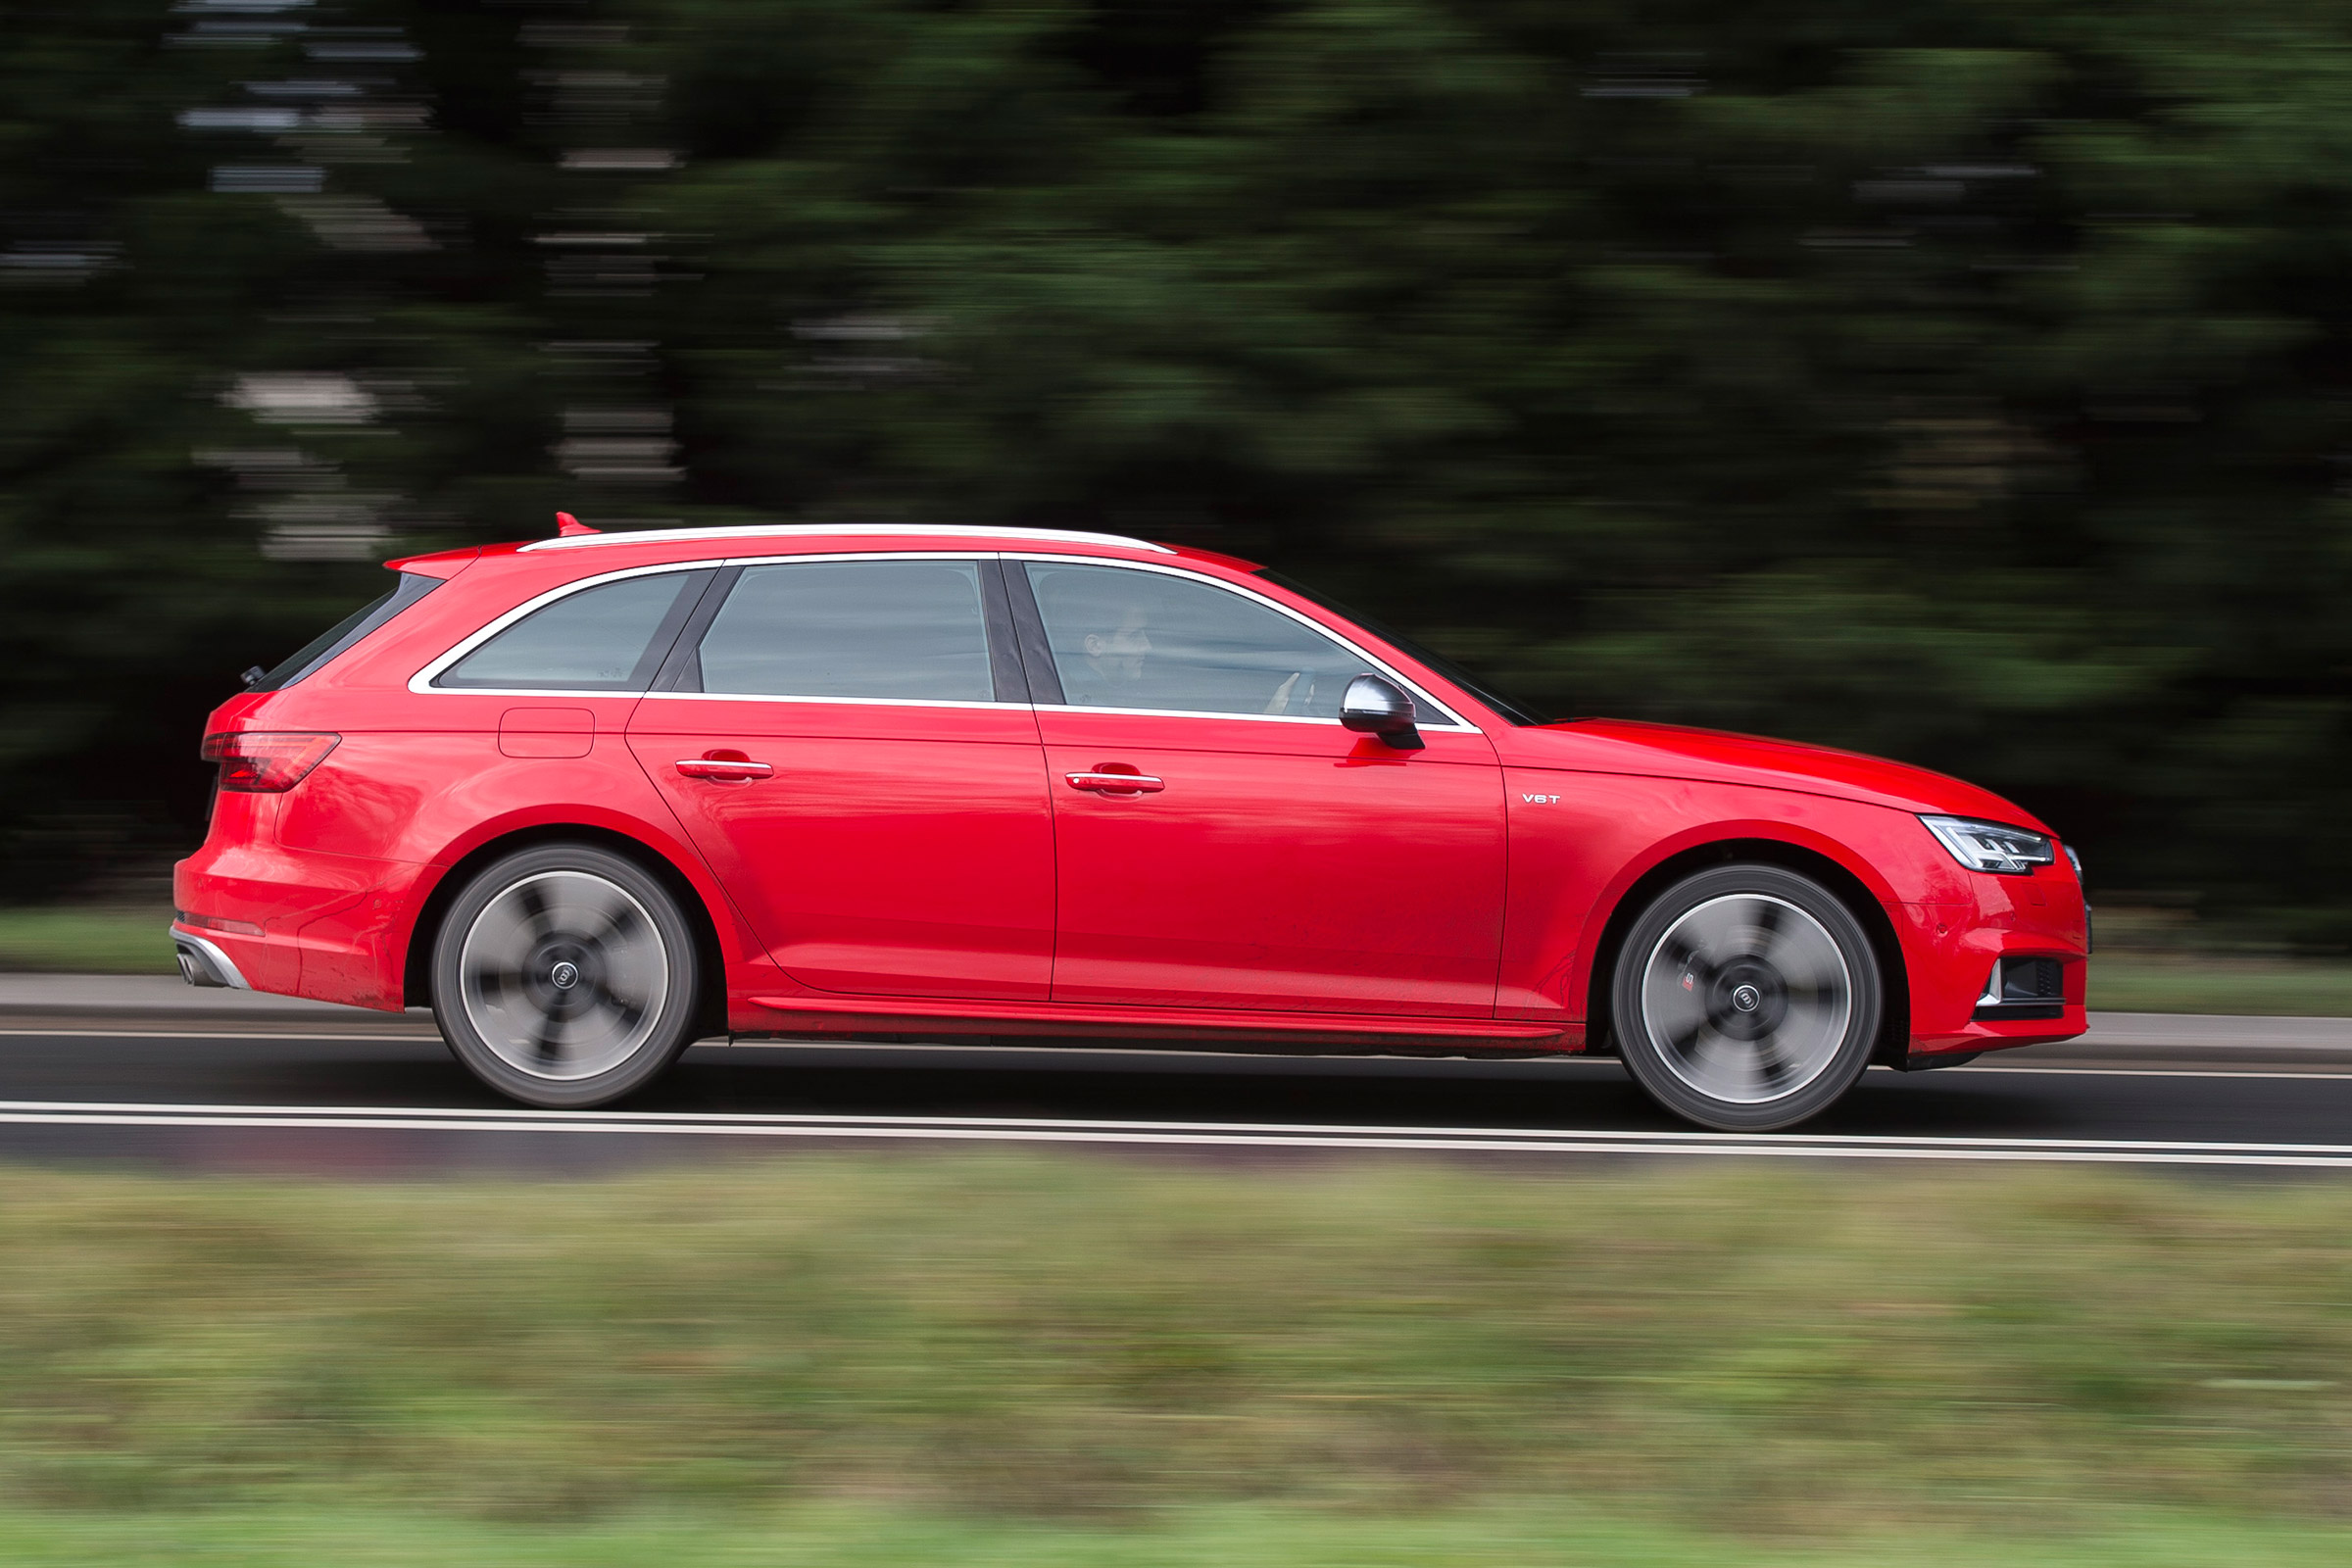 2017 Audi S4 Avant Test Drive Side View (View 4 of 17)